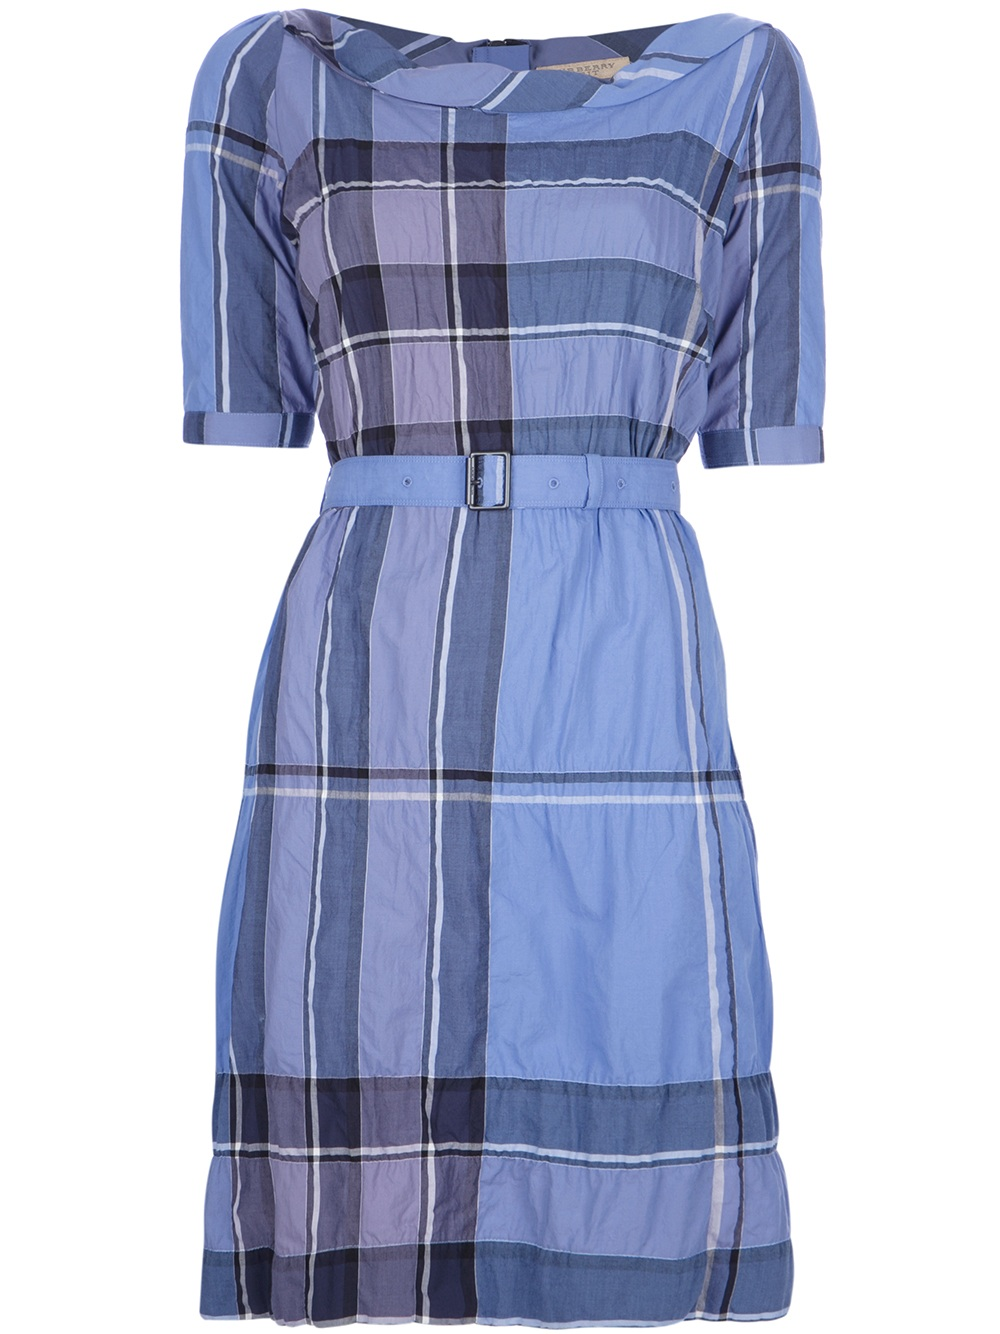 Burberry brit kristie plaid dress in blue lyst for Burberry brit green plaid shirt